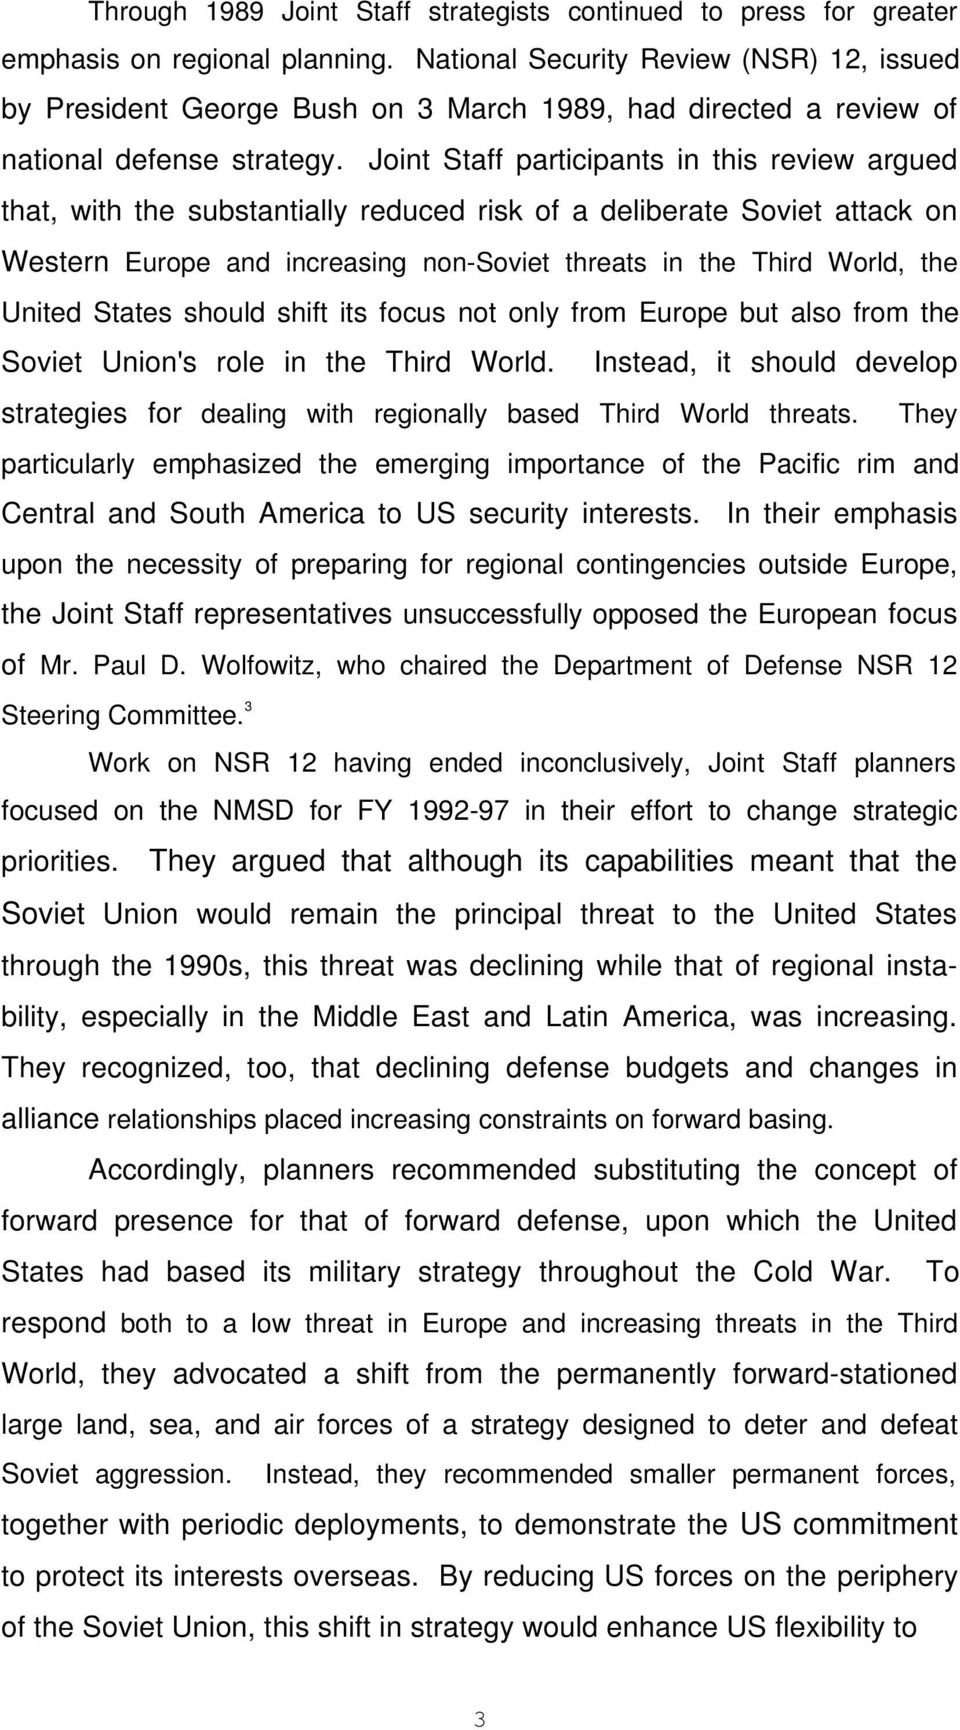 Joint Staff participants in this review argued that, with the substantially reduced risk of a deliberate Soviet attack on Western Europe and increasing non-soviet threats in the Third World, the